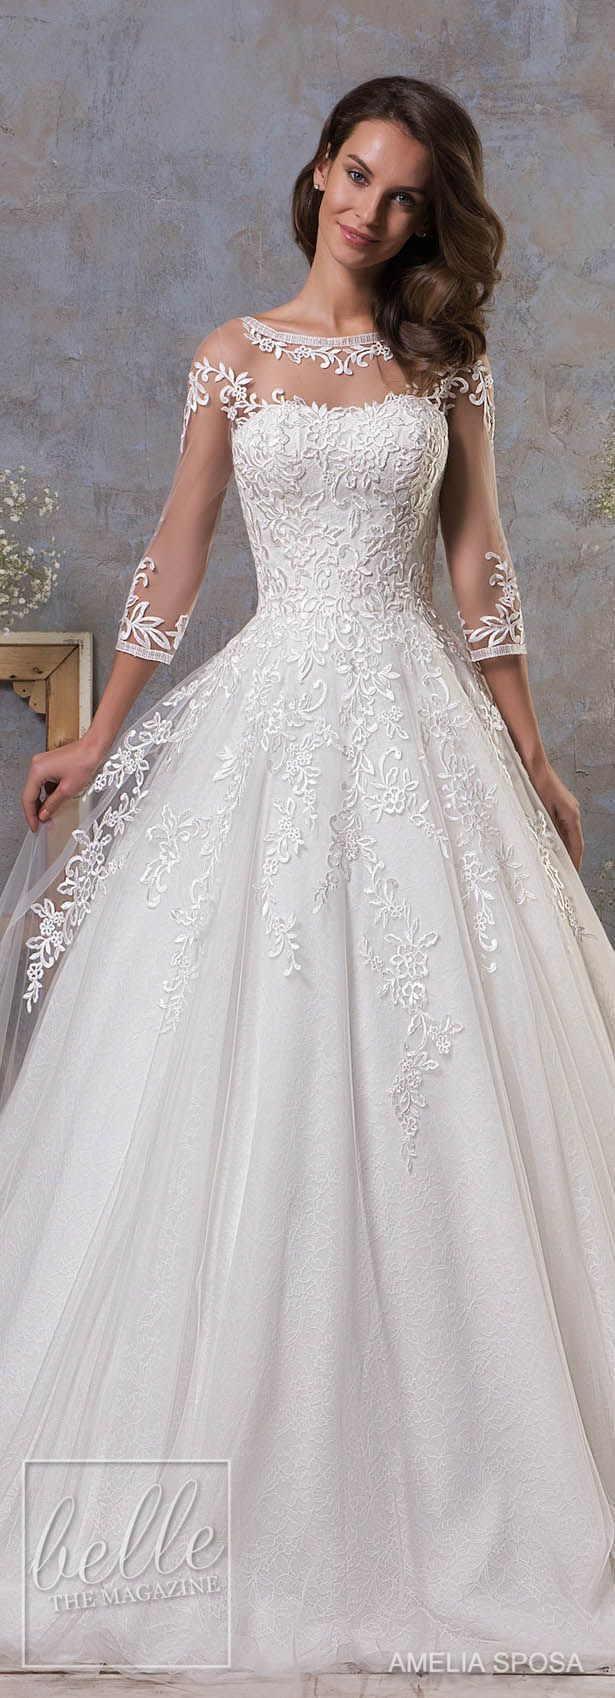 Amelia Sposa Fall 2018 Wedding Dresses #weddingdresses | Wedding ...